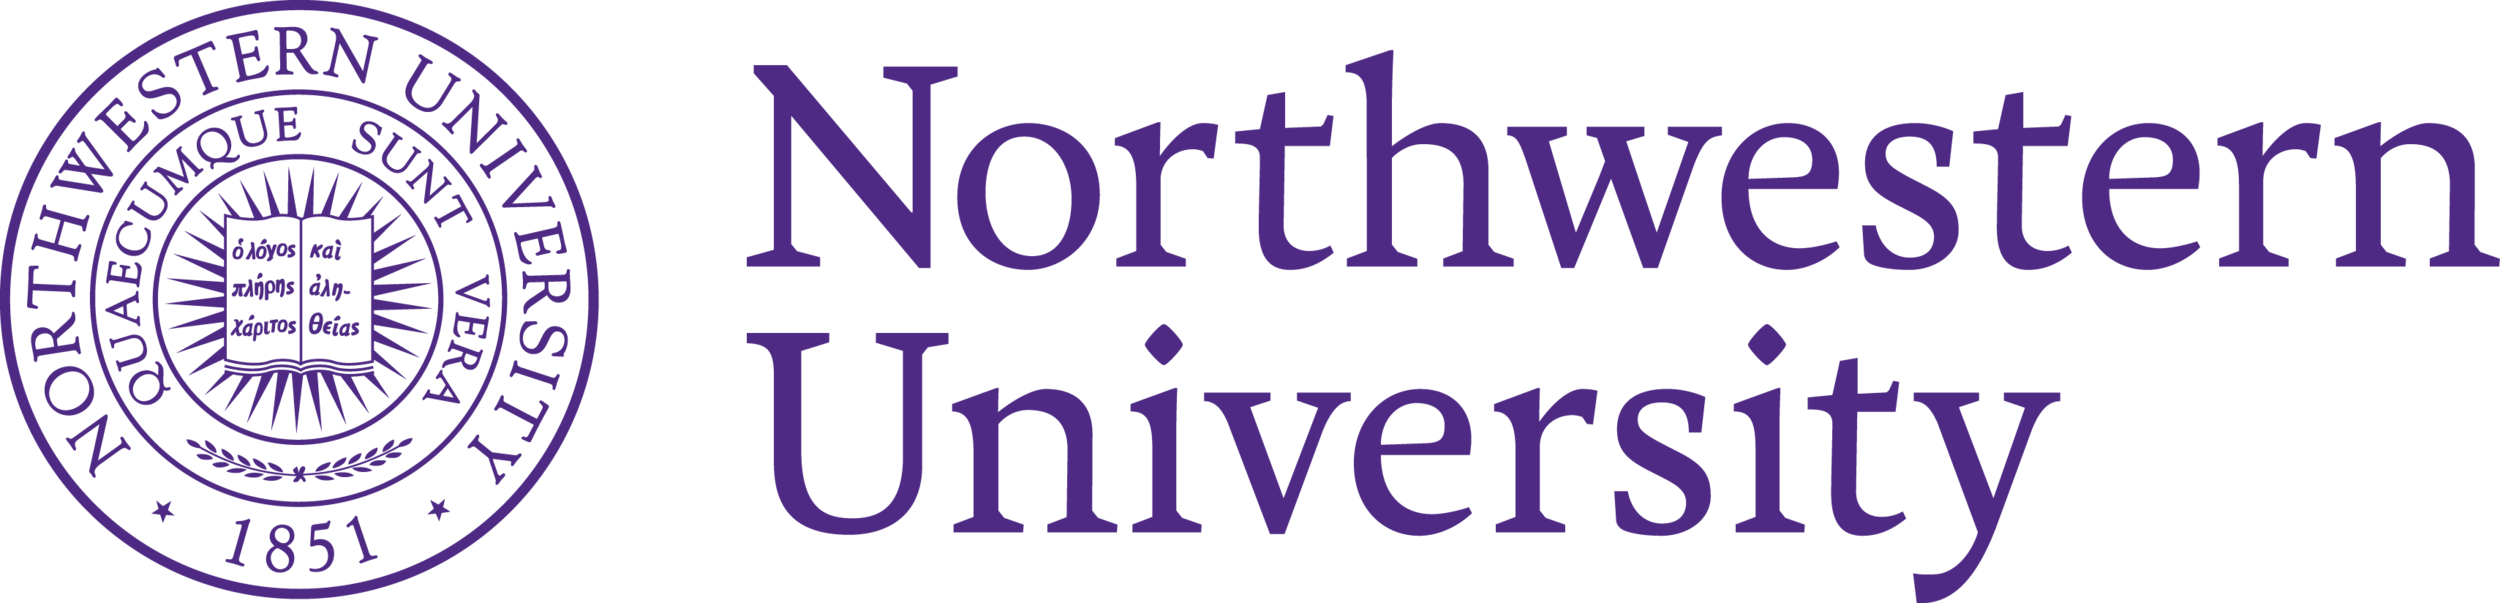 Northwestern Formal_horizontal (1).png